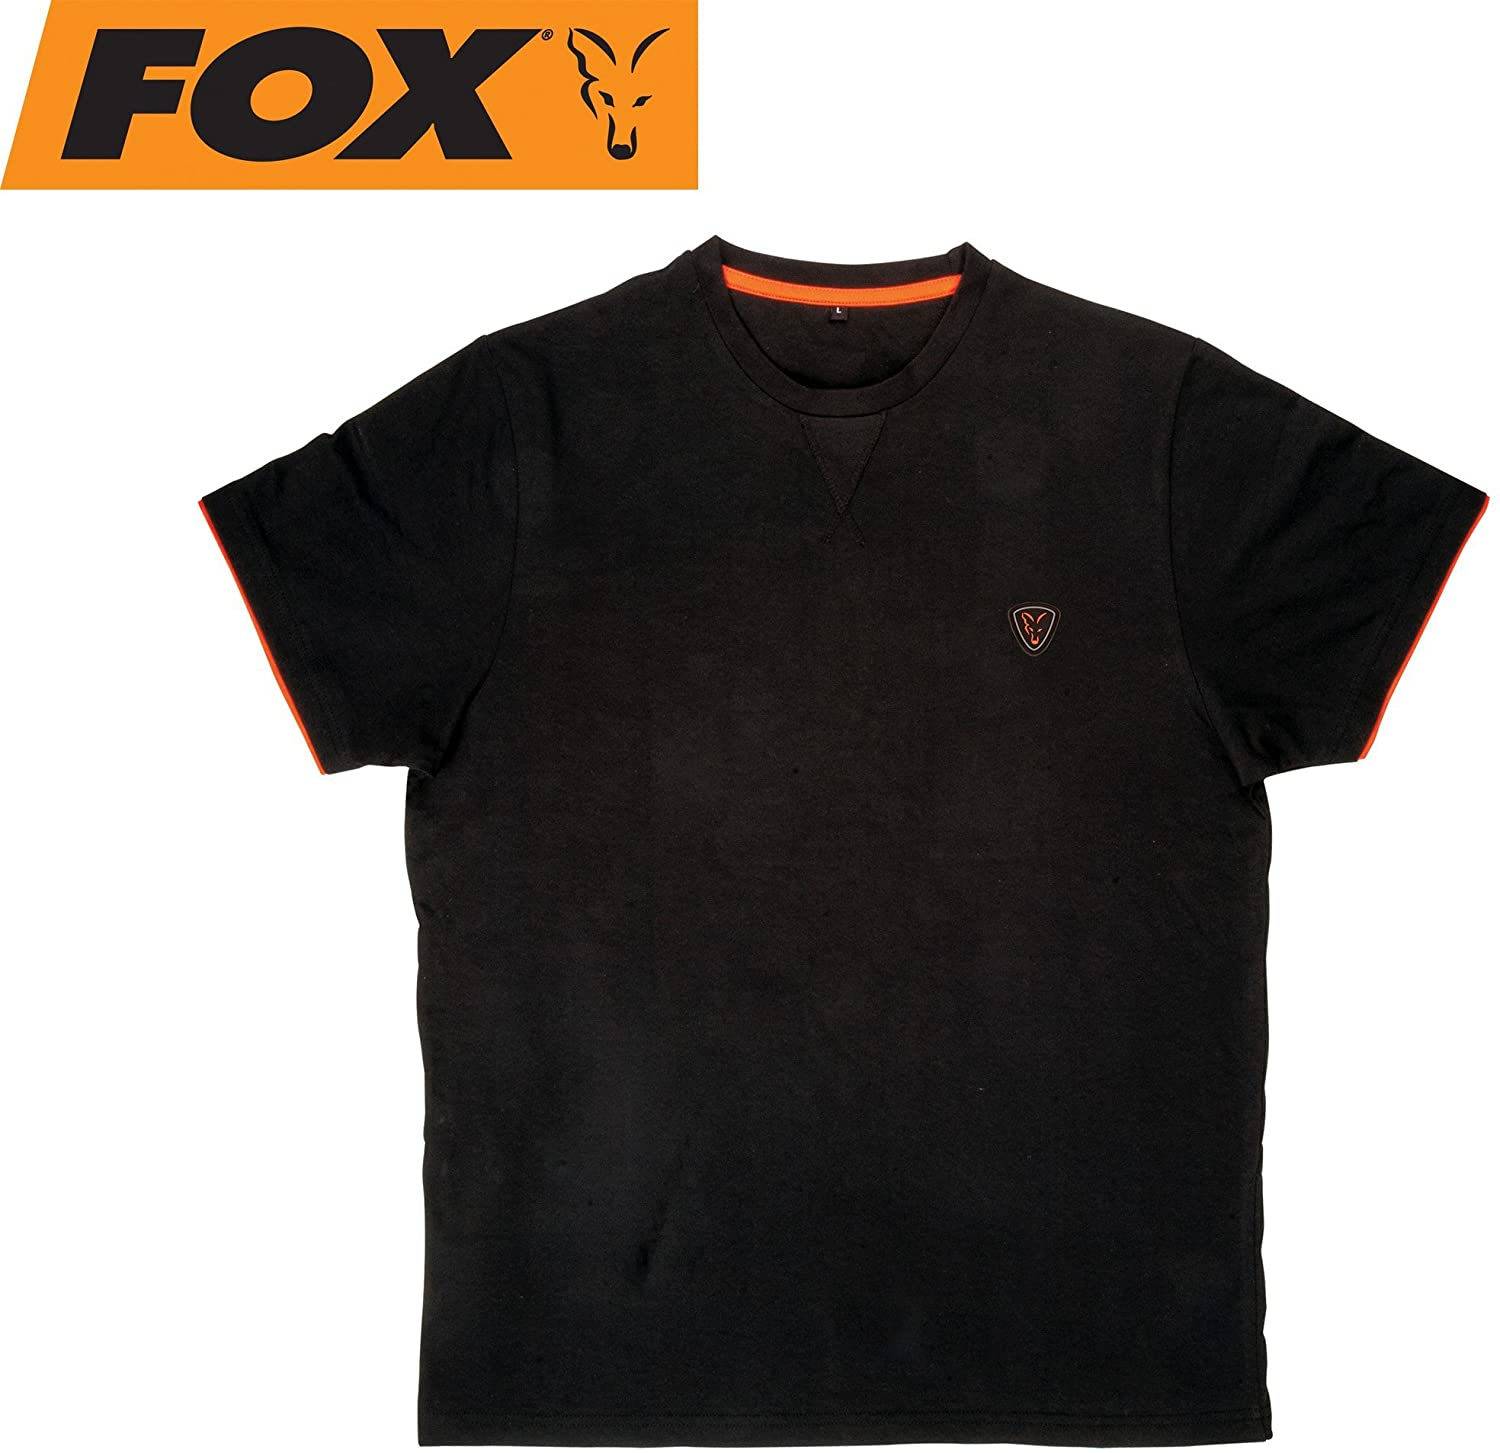 BLUZA FOX CU MANECA SCURTA Black / Orange Brushed Cotton T  - XL - CPR732